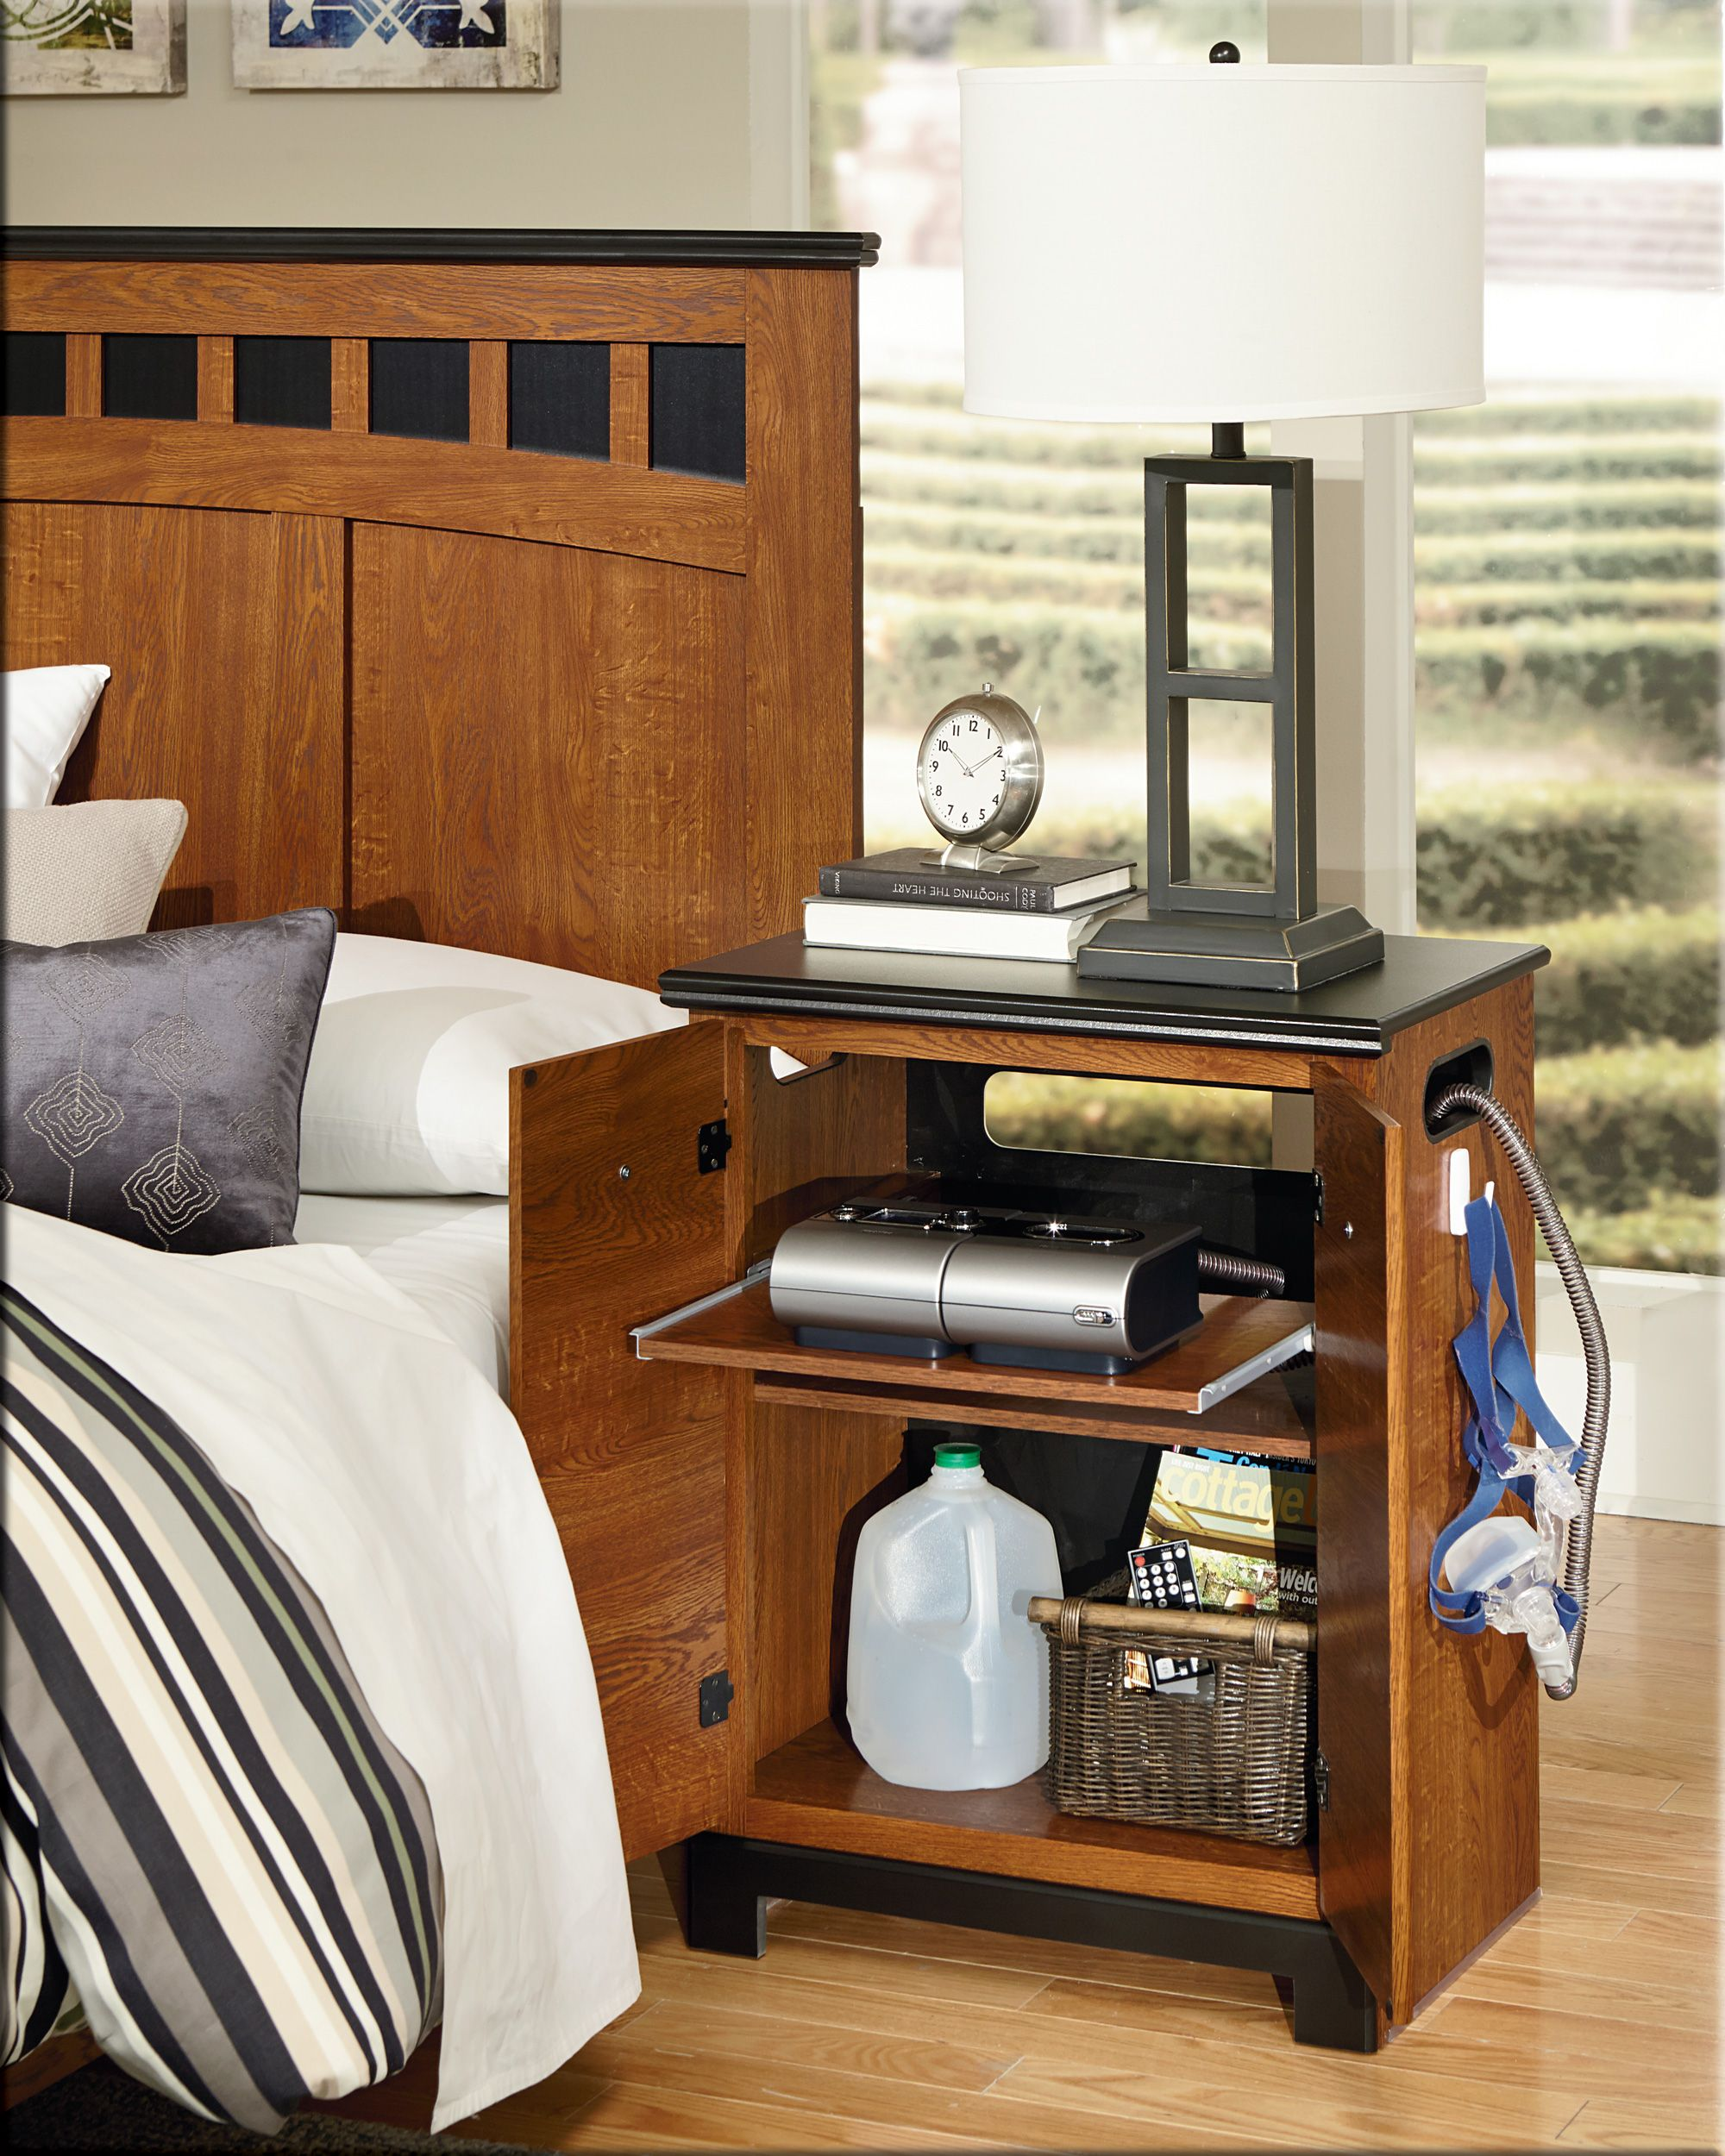 CPAP nightstand from Perdue Woodworks. In stock at